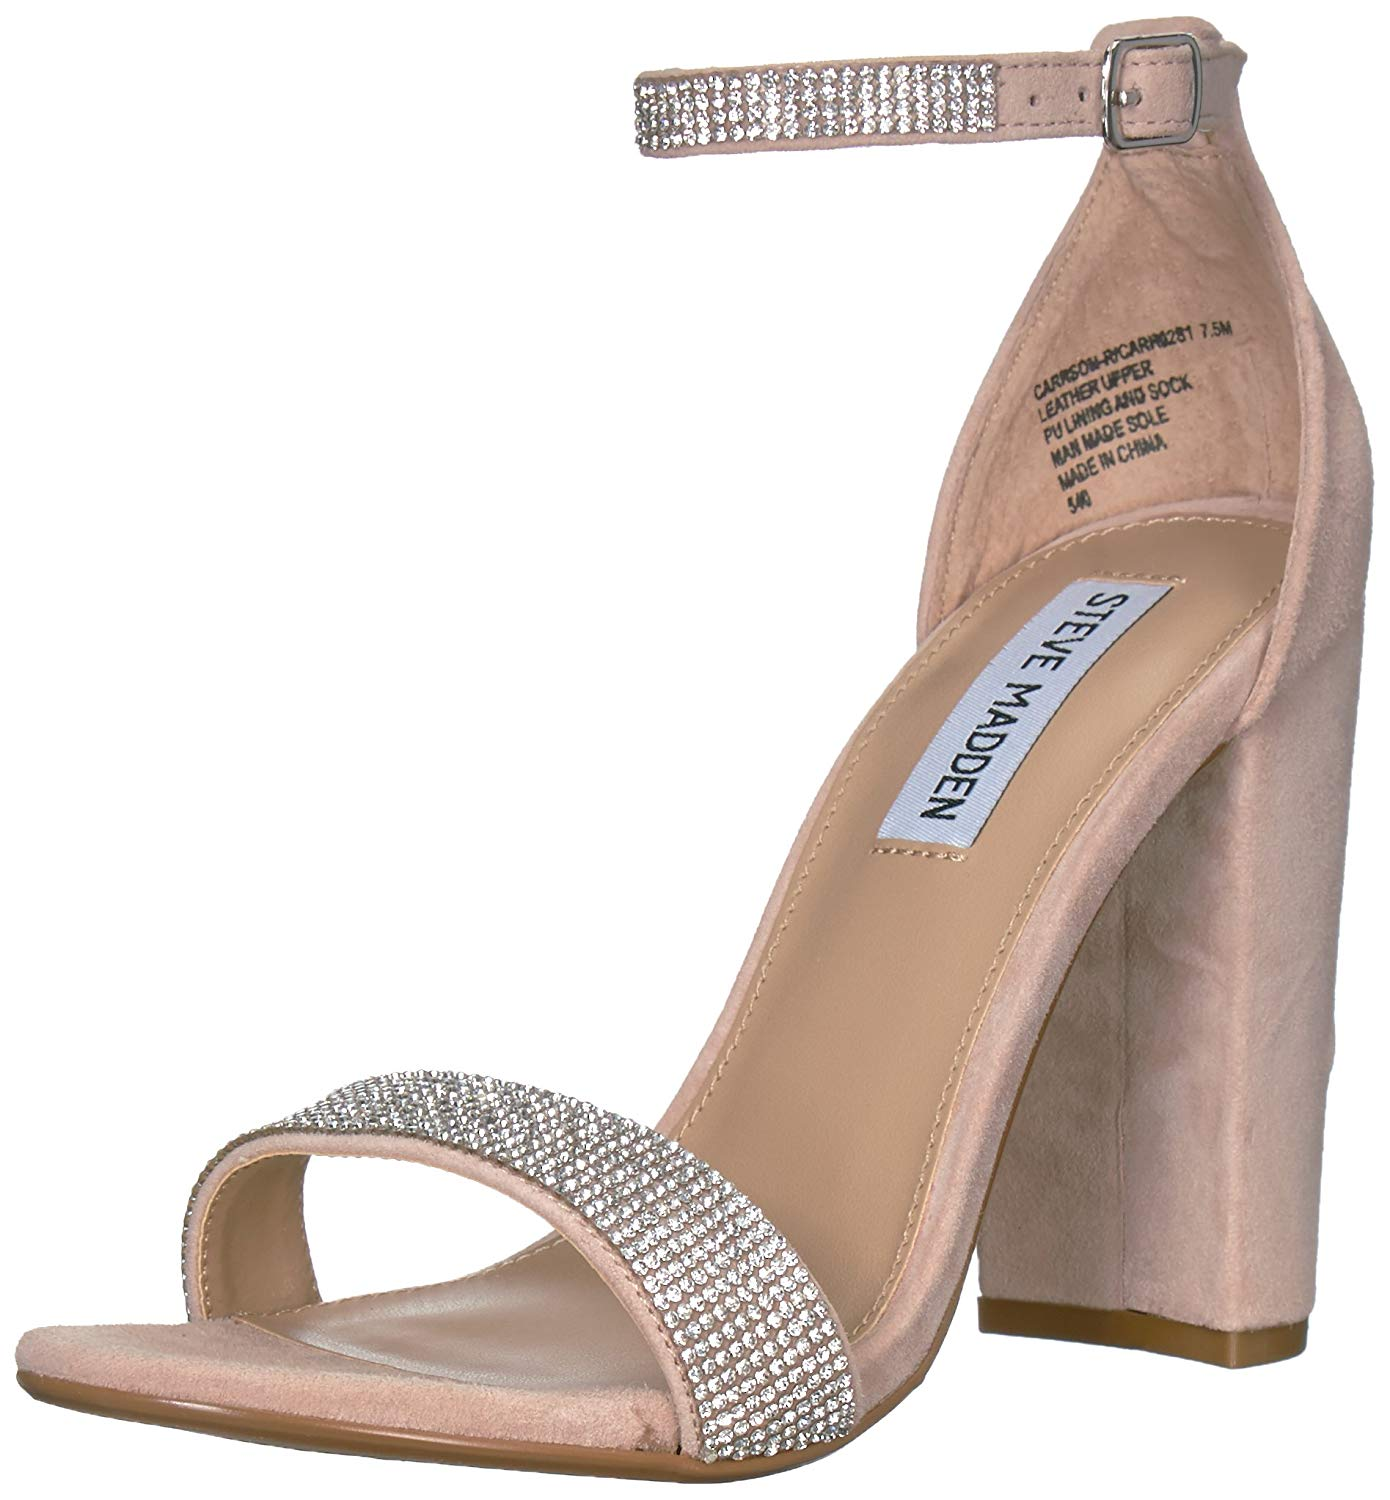 2899679aaf3 Details about Steve Madden Women's Carrson-R Heeled Sandal, Rhinestone,  Size 10.0 Ky0m